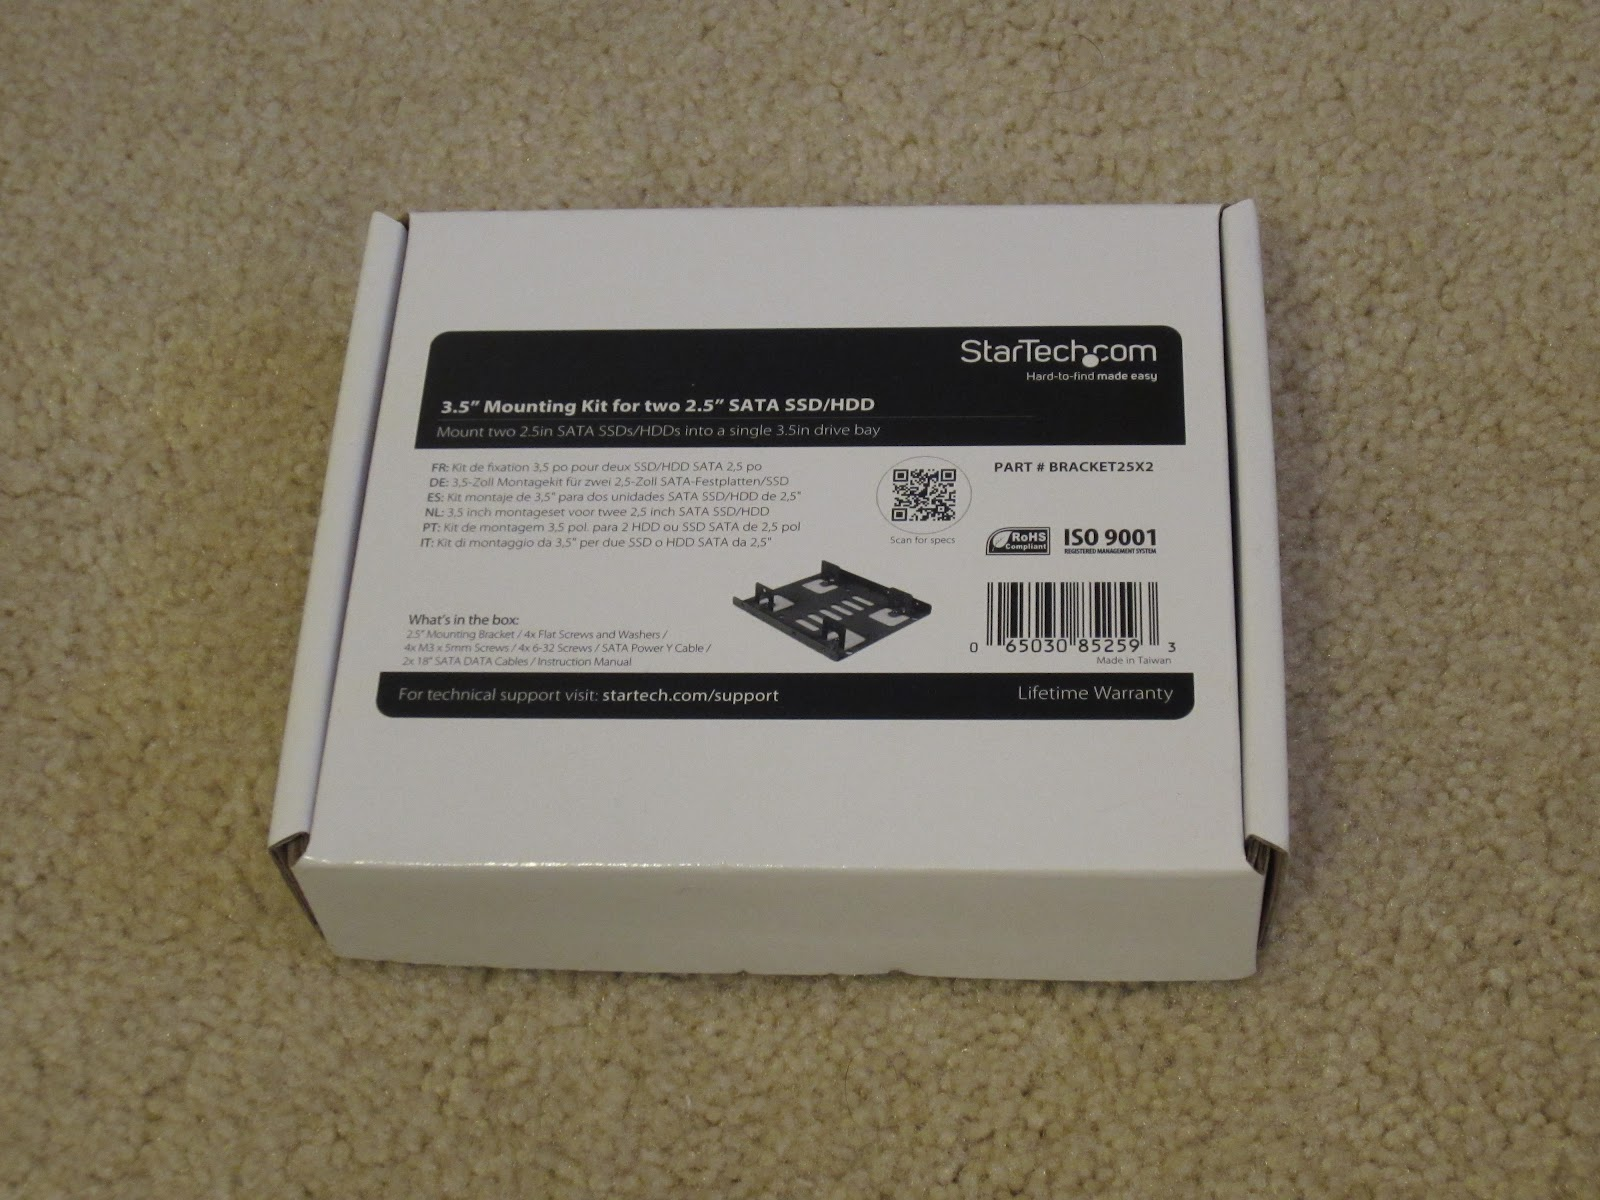 Future Guide Upgrading Your Pc To An Ssd Unwind Media Bracket Black Metal 25 Inch 35 Mounting Kit For Sata Hdd